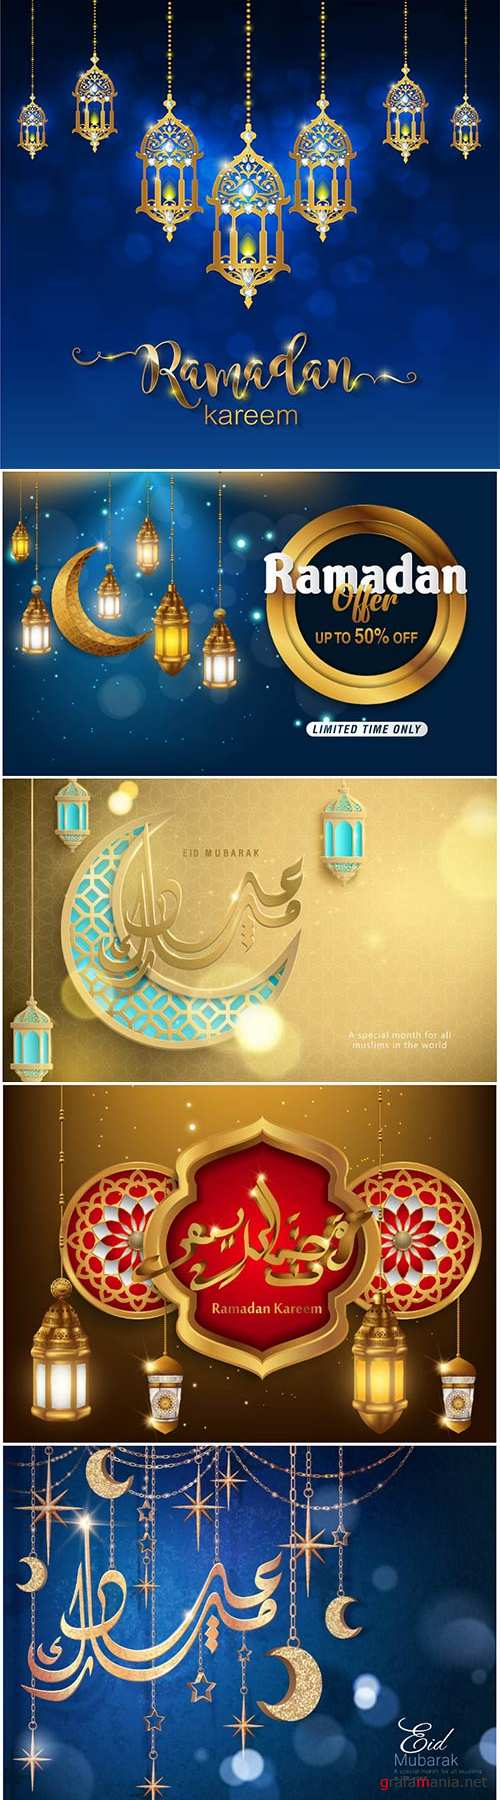 Ramadan Kareem vector calligraphy design with decorative floral pattern, mosque silhouette, crescent and glittering islamic background # 60